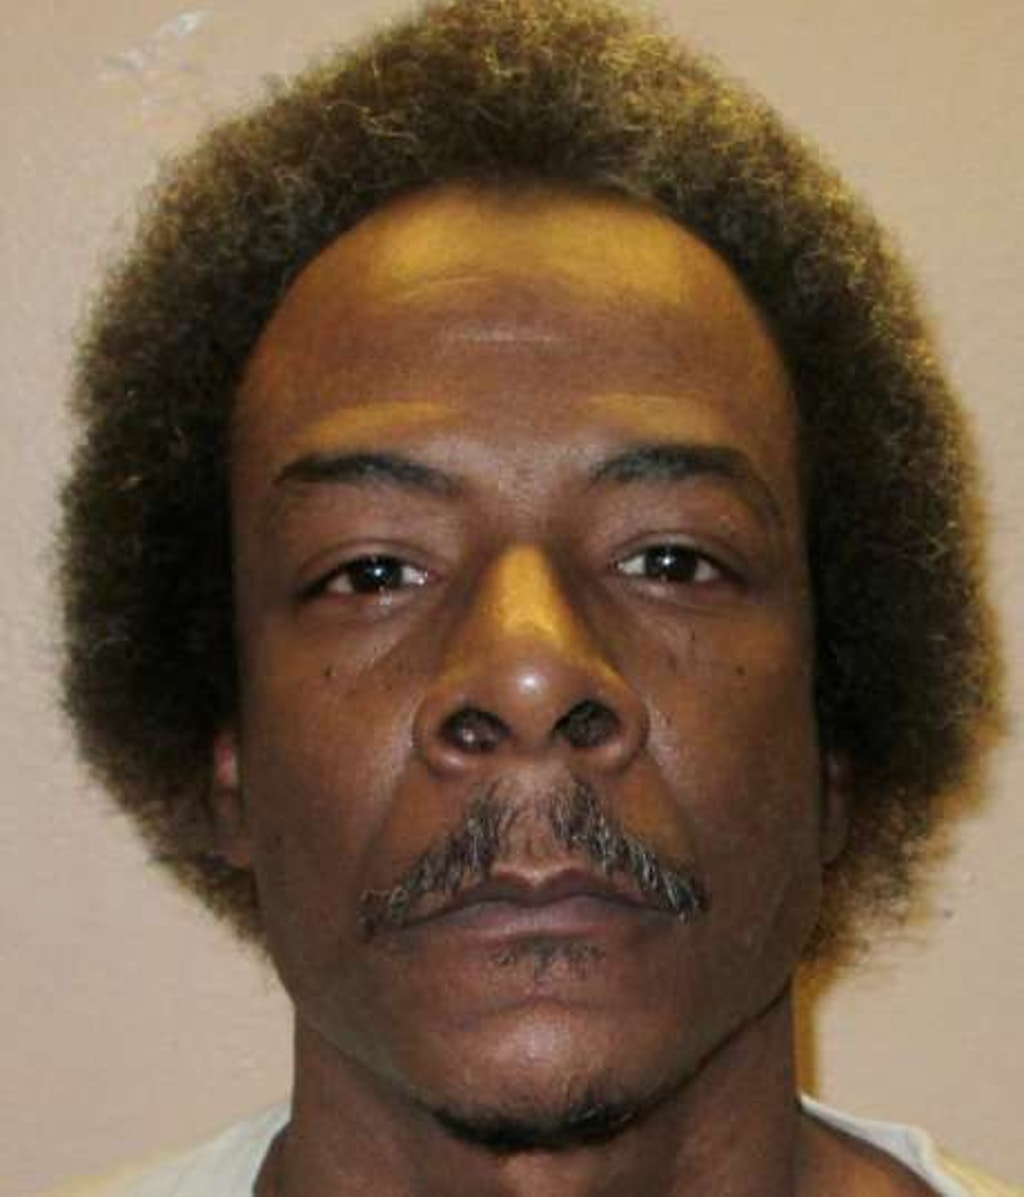 Alabama Prosecutors Join Motion to Resentence Death-Row Prisoner With 48 IQ to Life Without Parole